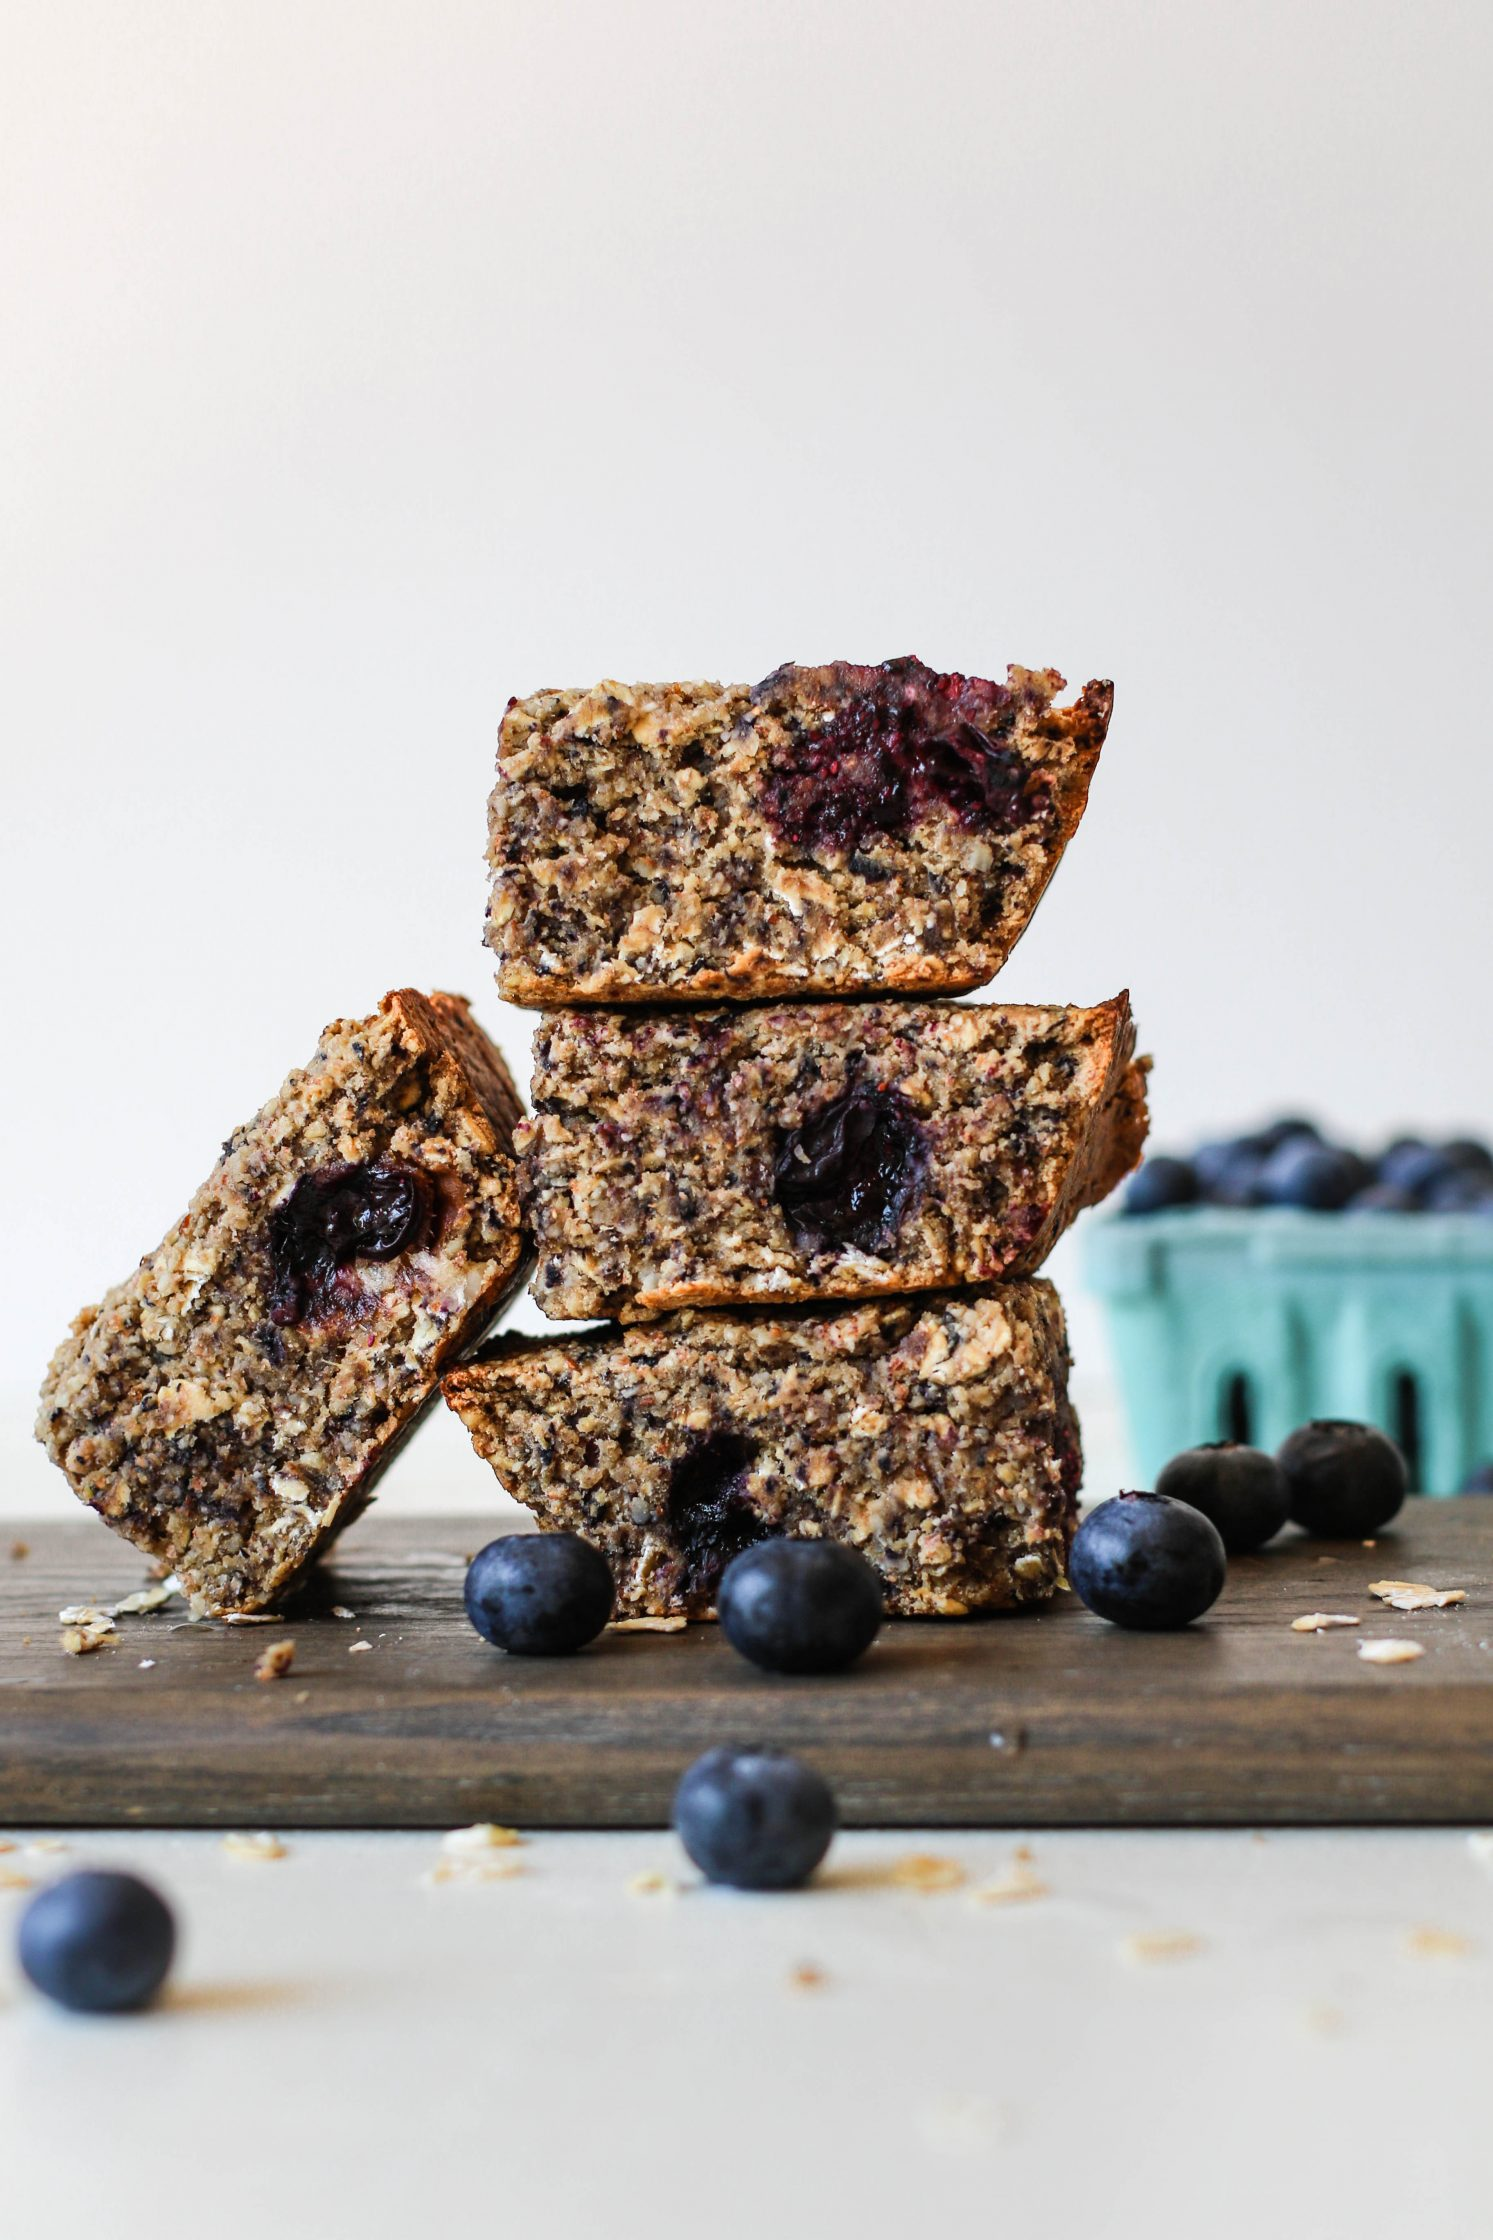 Blueberry Maple Baked Breakfast Bars by Flora & Vino